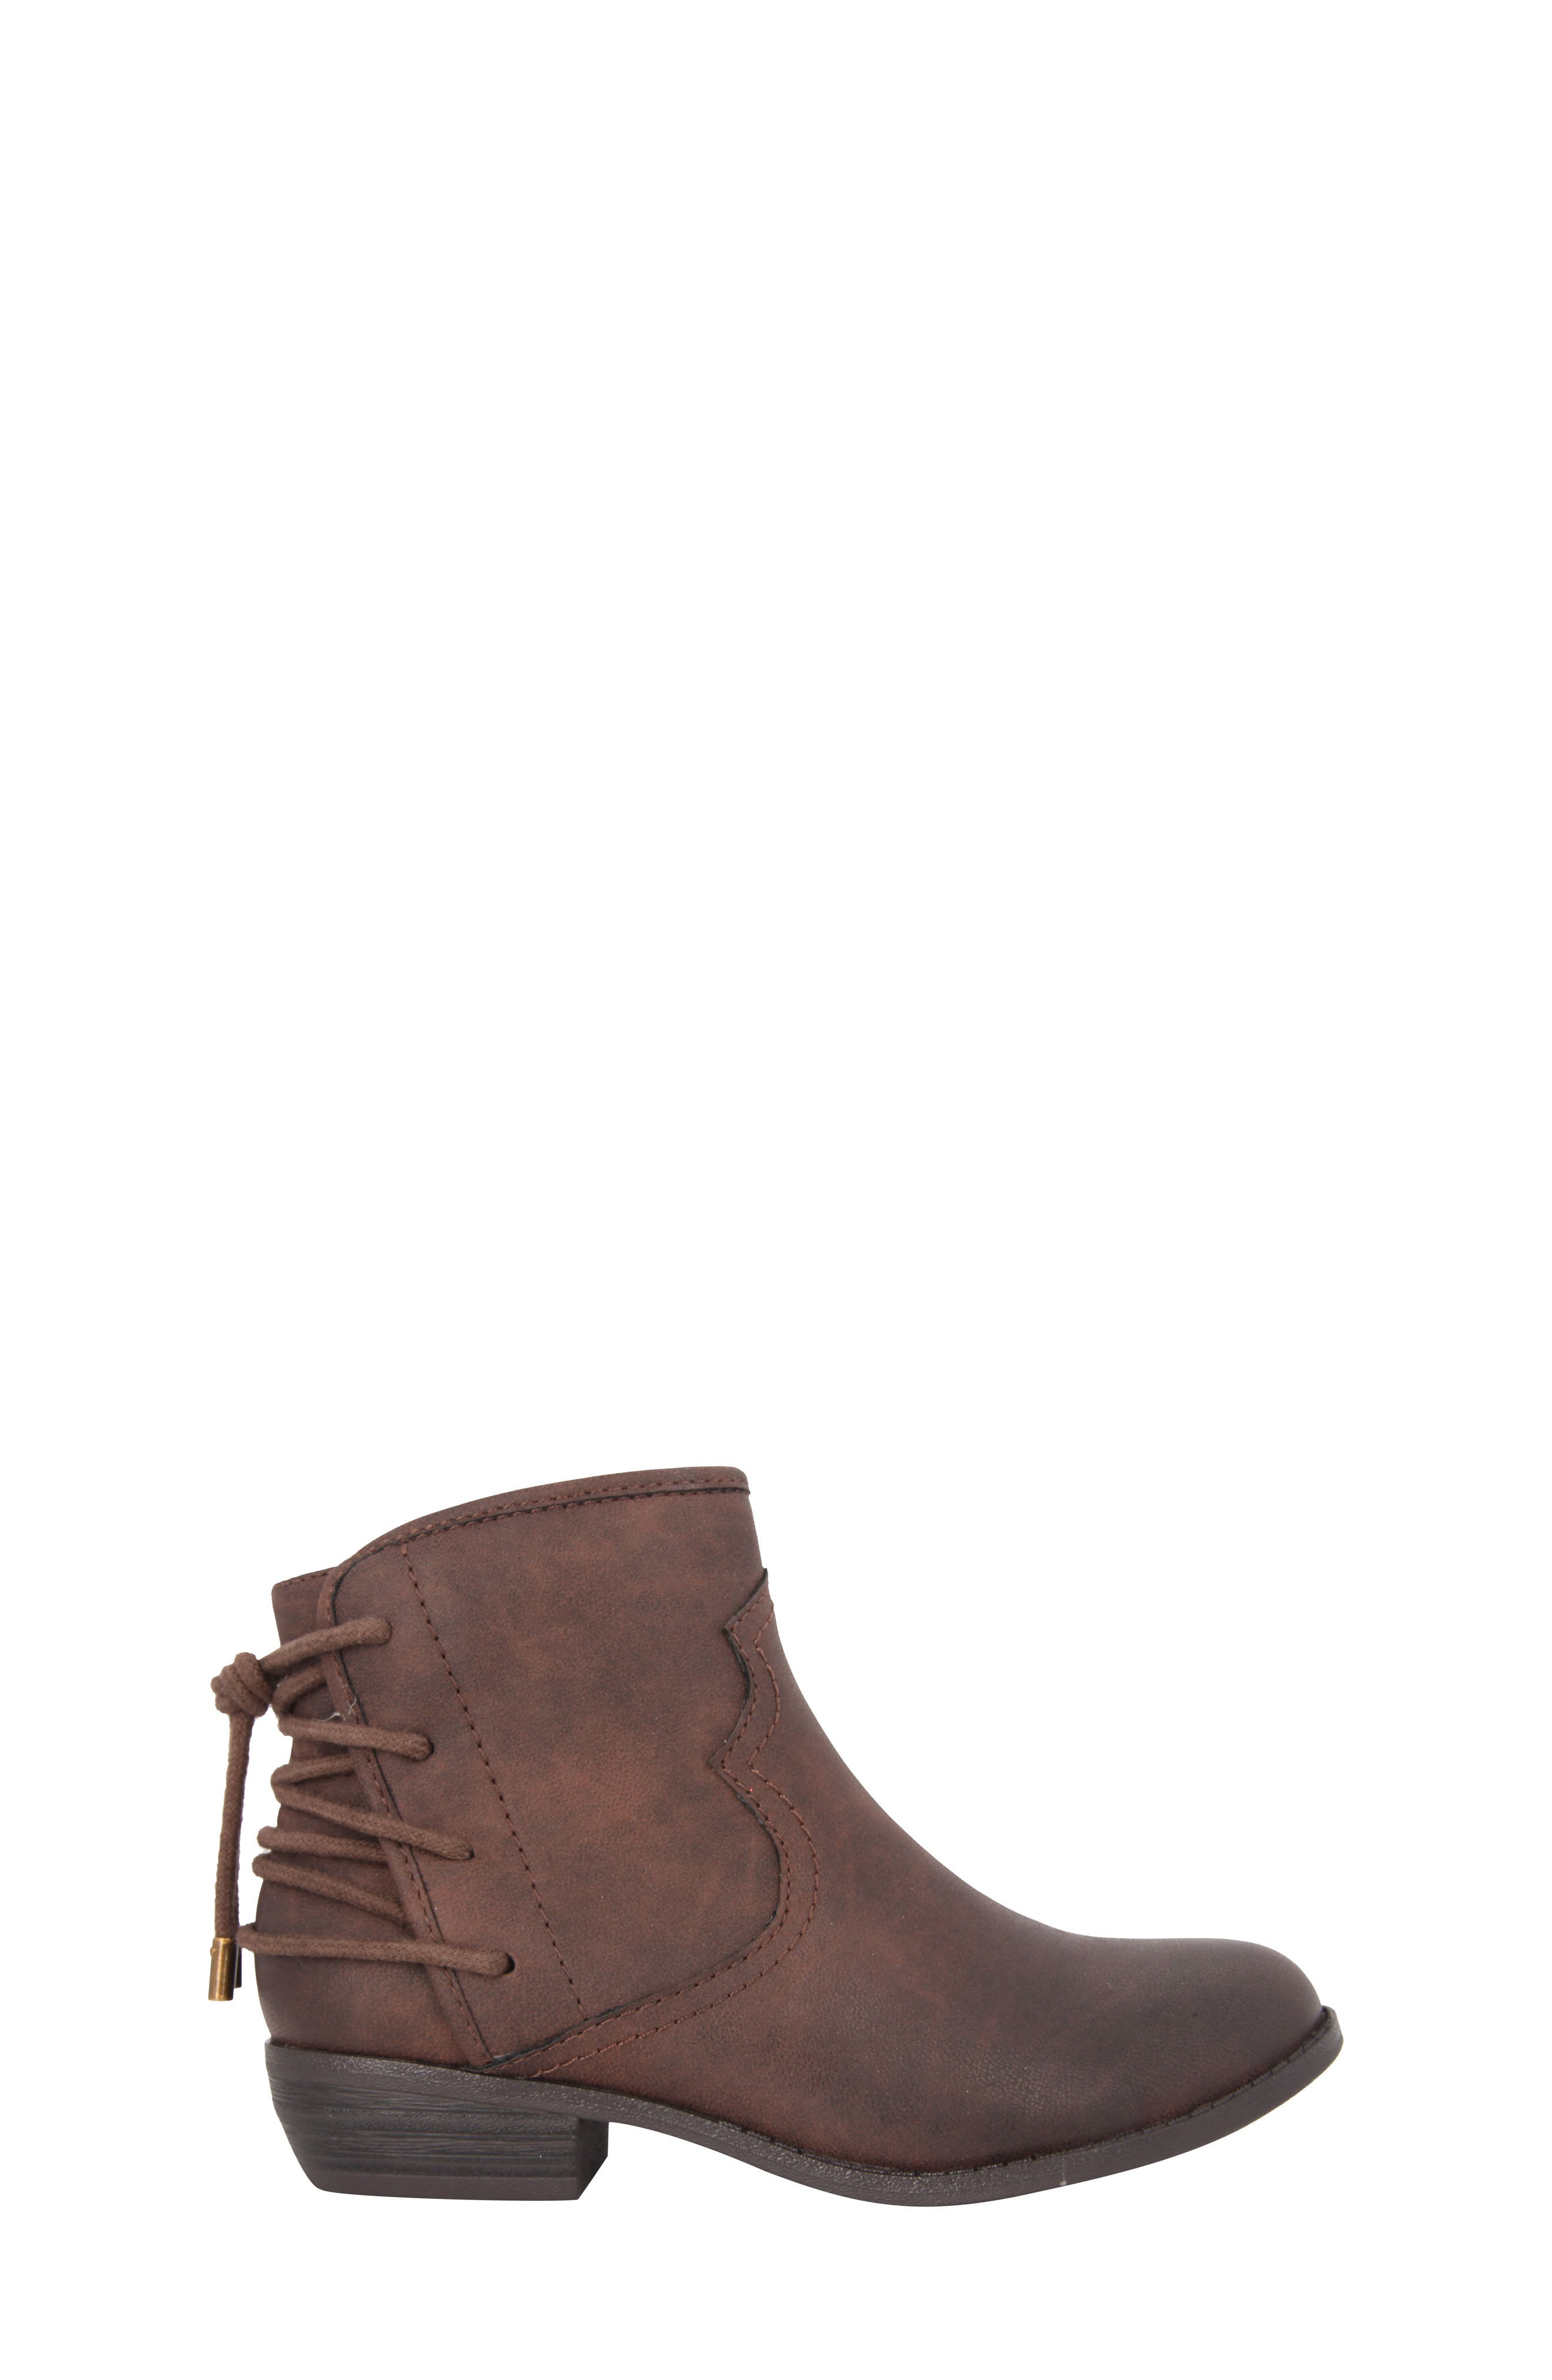 Evette Distressed Back-Lace Bootie,                             Alternate thumbnail 3, color,                             Brown Faux Leather